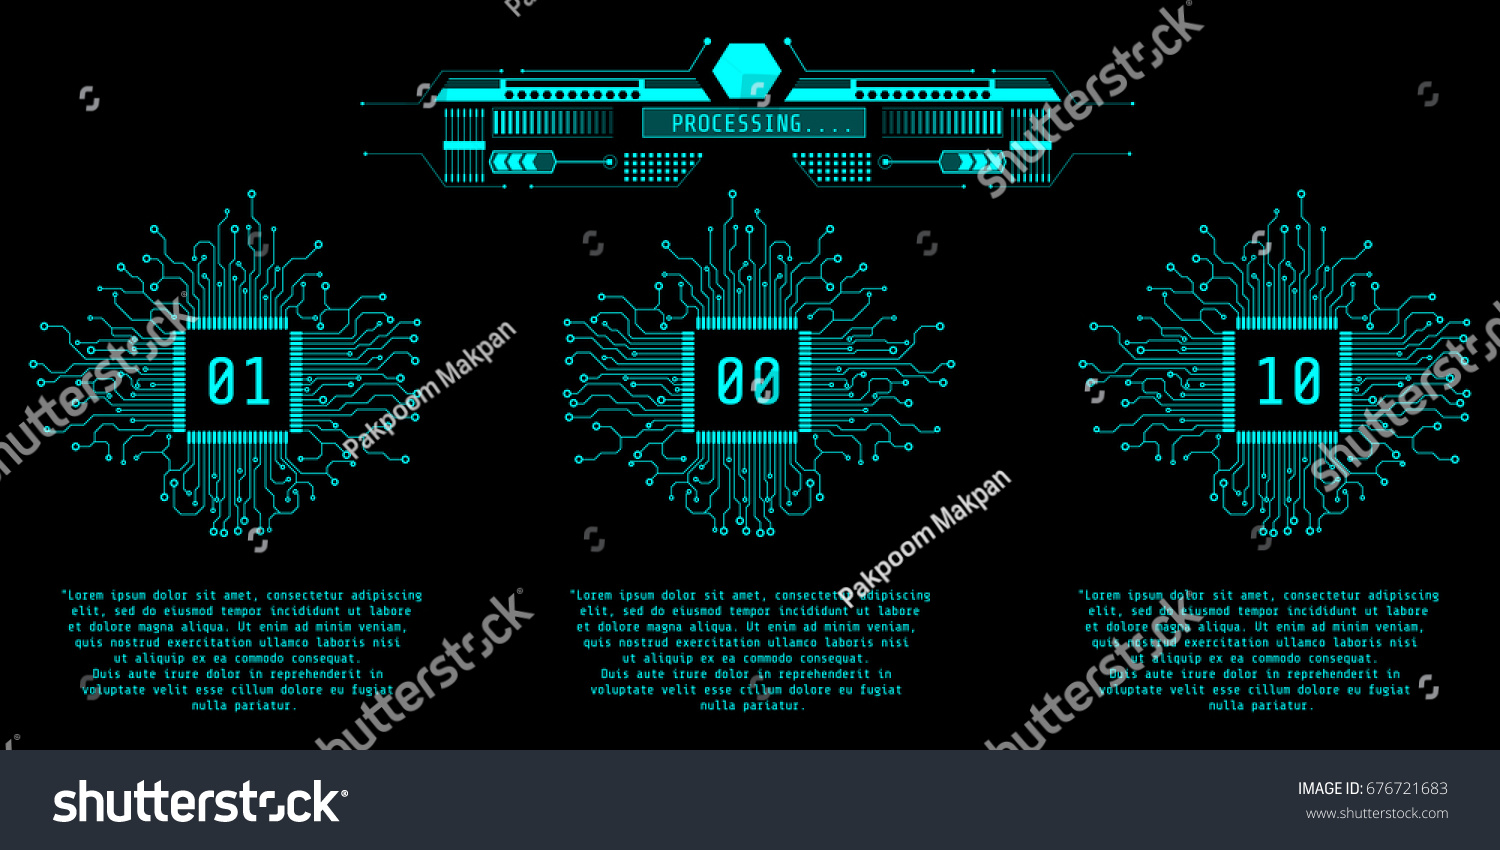 Hud Futuristic Microprocessor Infographic Vector Background Stock Circuit Board Ai Free Graphics Download Virtual Graphic Cpu With And Processing Monitor